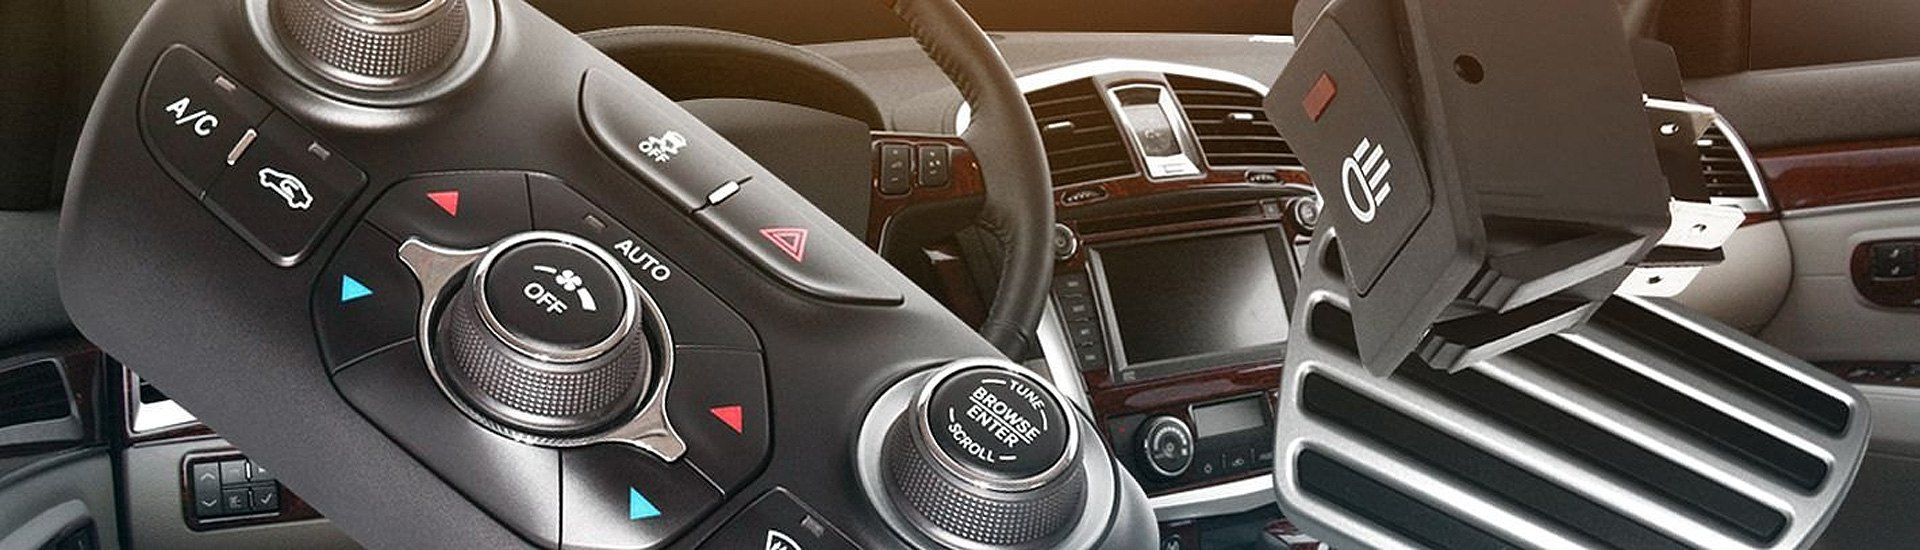 Interior Parts Restore Your Passenger Compartment's Functions